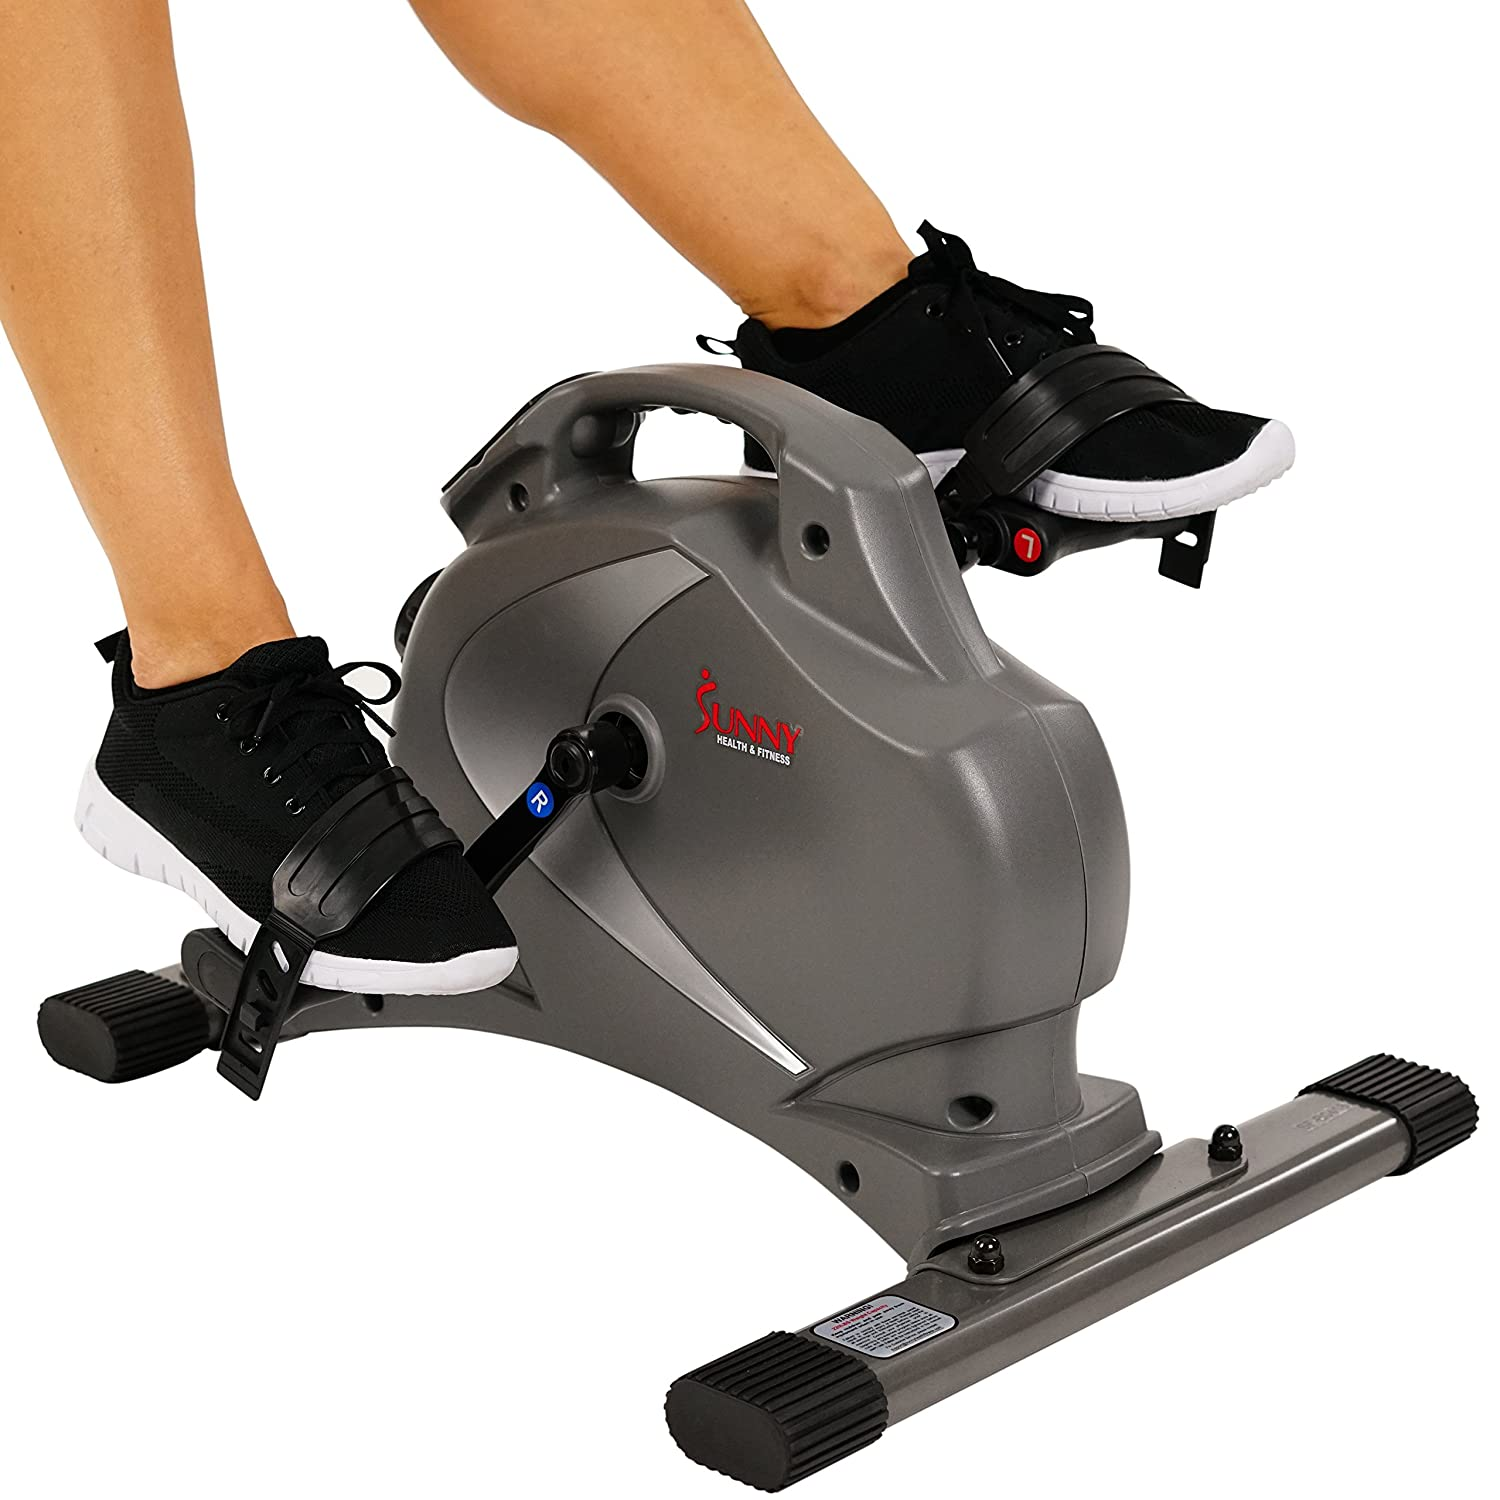 Sunny health & fitness Desk Bike Black Friday Deal 2020